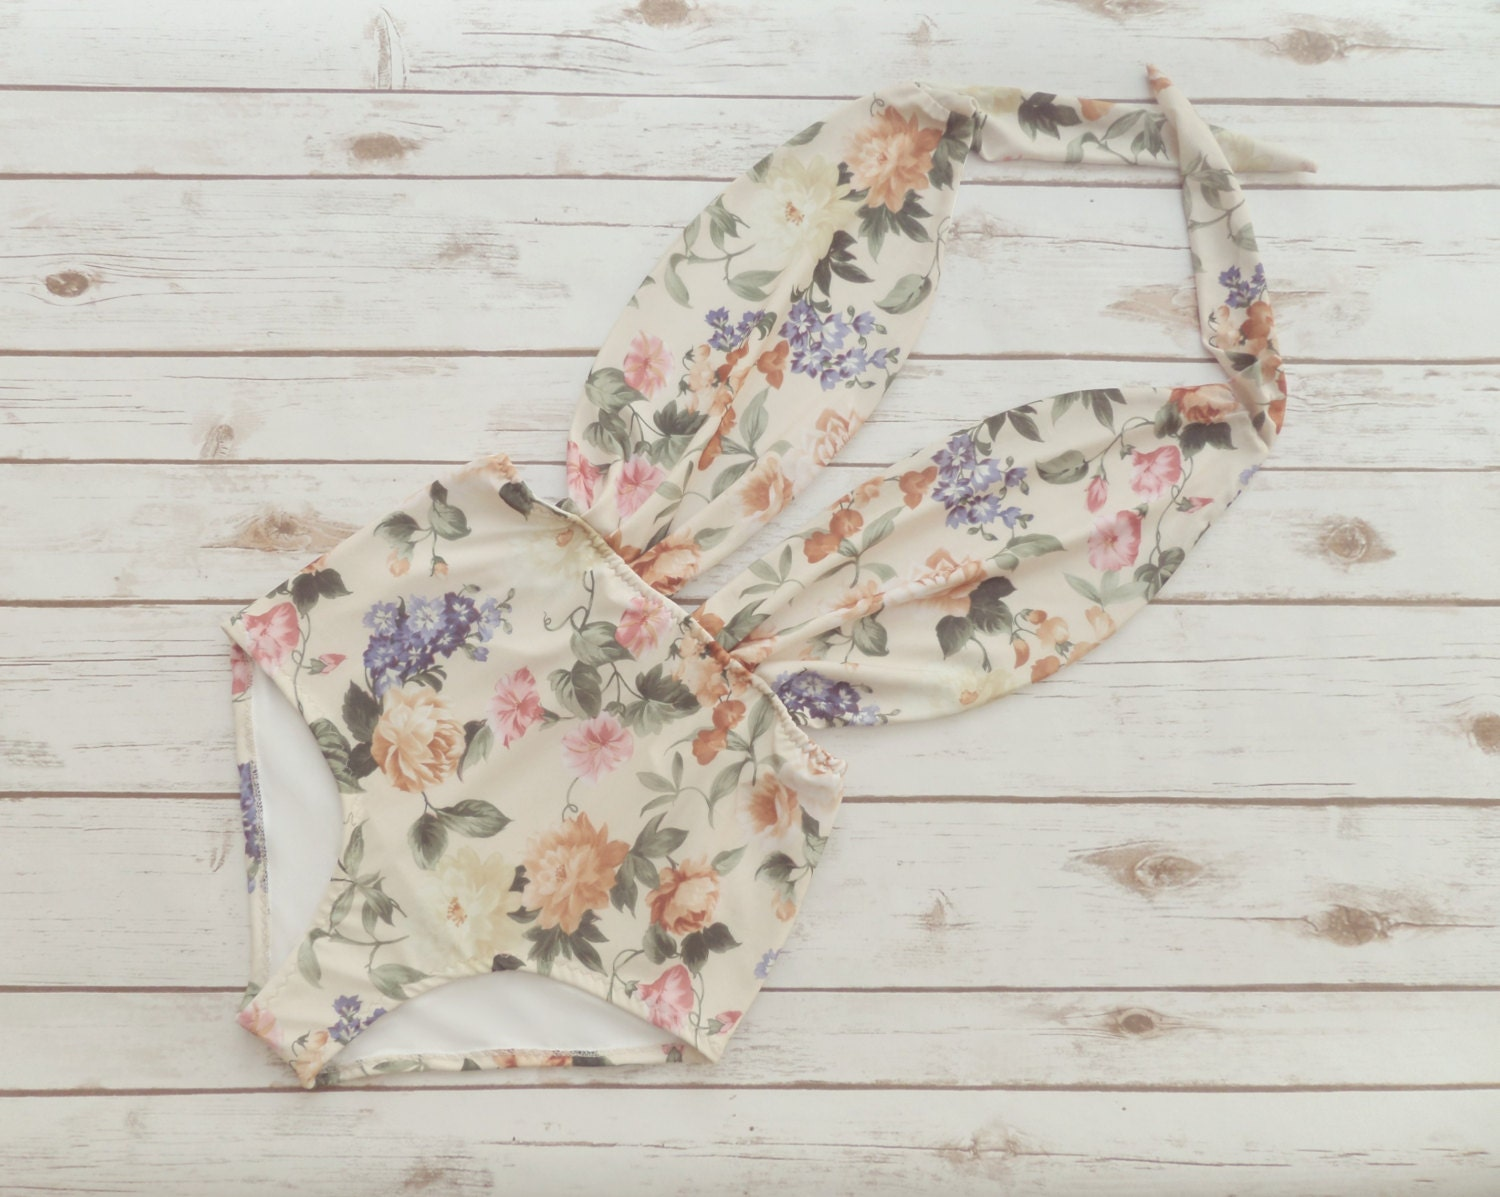 Swimsuit High Waisted Vintage Style One Piece  Retro Pinup Maillot  Floral Print Bohemian Bathing Suit Swimwear  Unique Pretty  So Cute!